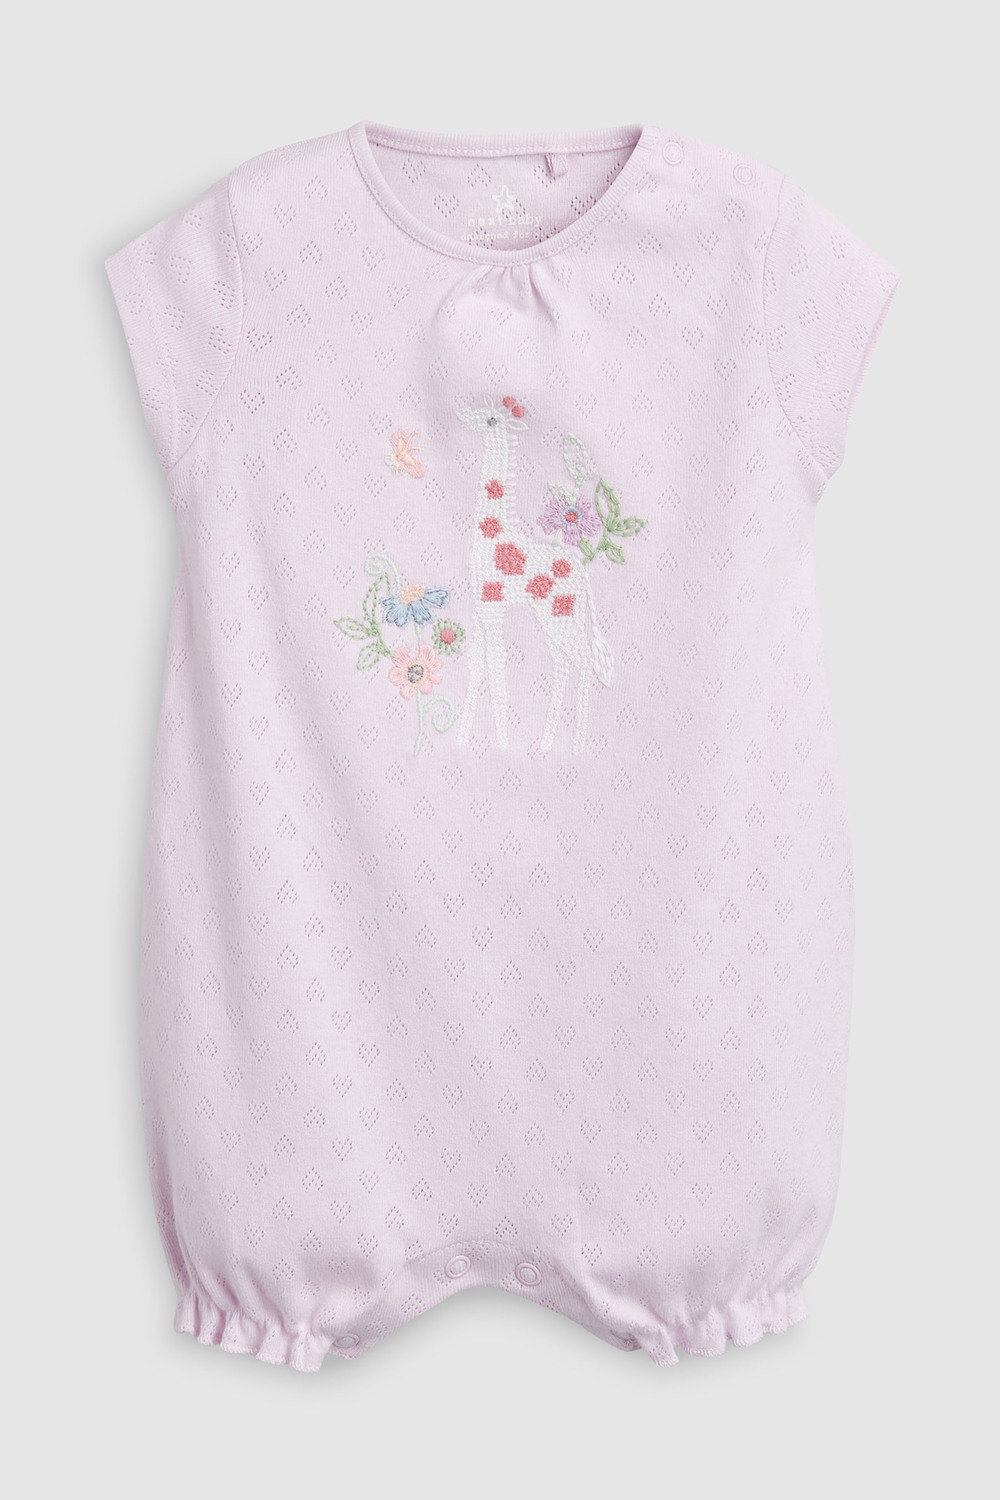 6dfe16b5fc9 Next Giraffe Embroidered Rompers Three Pack (0mths-2yrs) Online ...